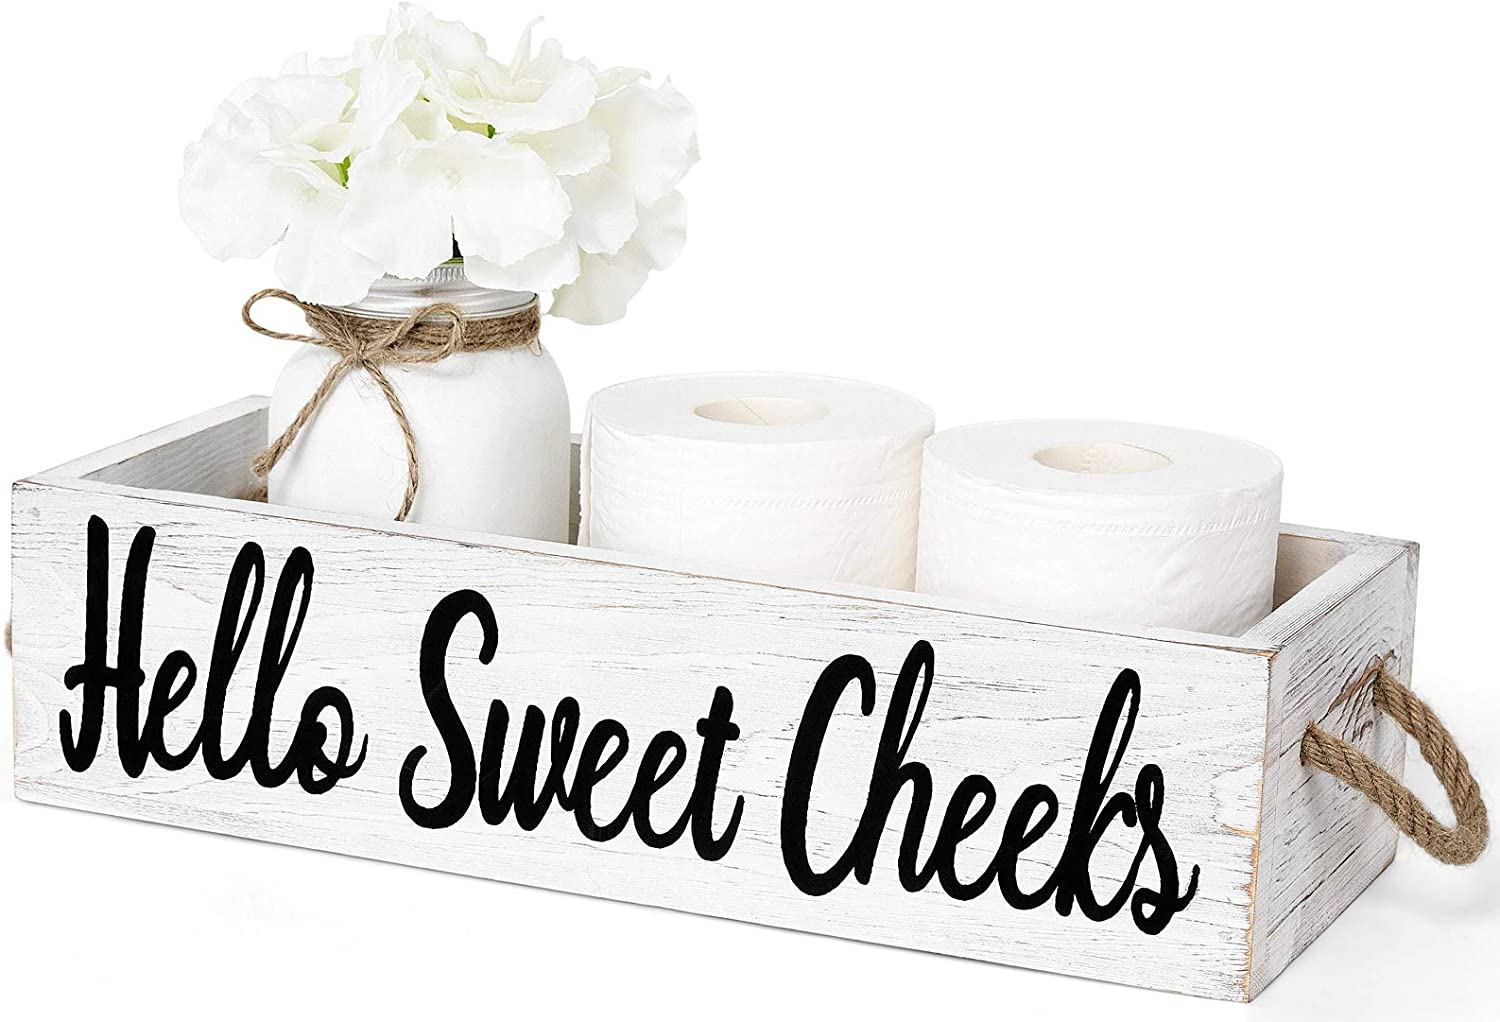 Dahey 1 Pack Farmhouse Bathroom Decor Box Toilet Paper Holder Wood Tank with Funny Sign Rustic Decor for Kitchen Table Countertop (Major Jar and Artificial Flower Included), White